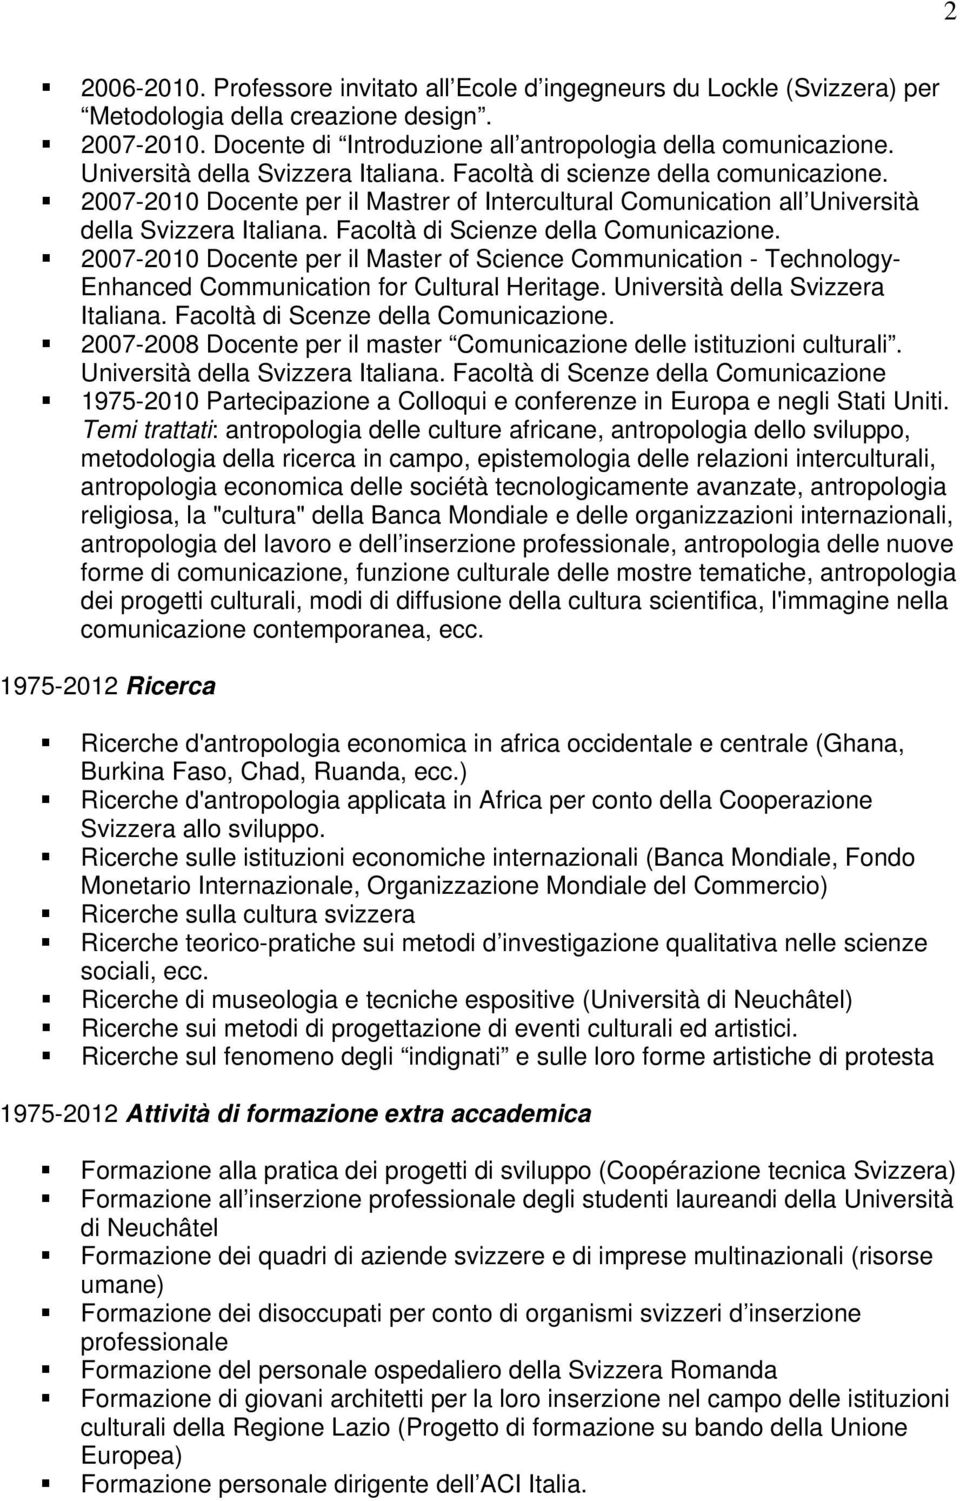 Facoltà di Scienze della Comunicazione. 2007-2010 Docente per il Master of Science Communication - Technology- Enhanced Communication for Cultural Heritage. Università della Svizzera Italiana.